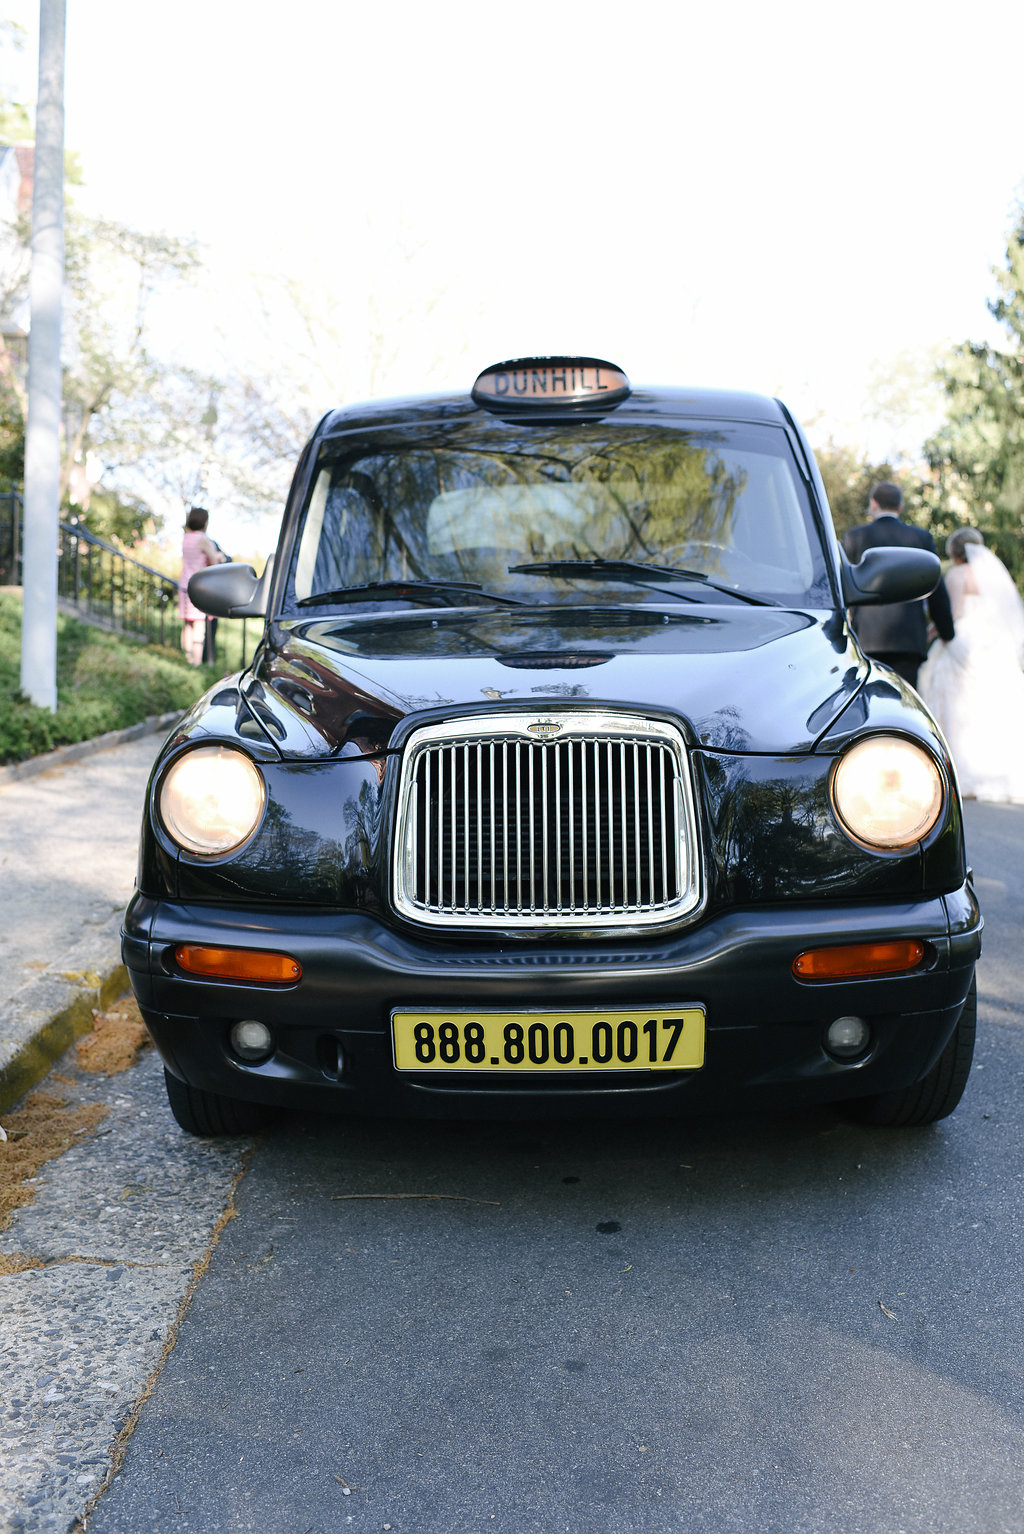 Dunhill taxi taking the bride and groom from the ceremony to the reception